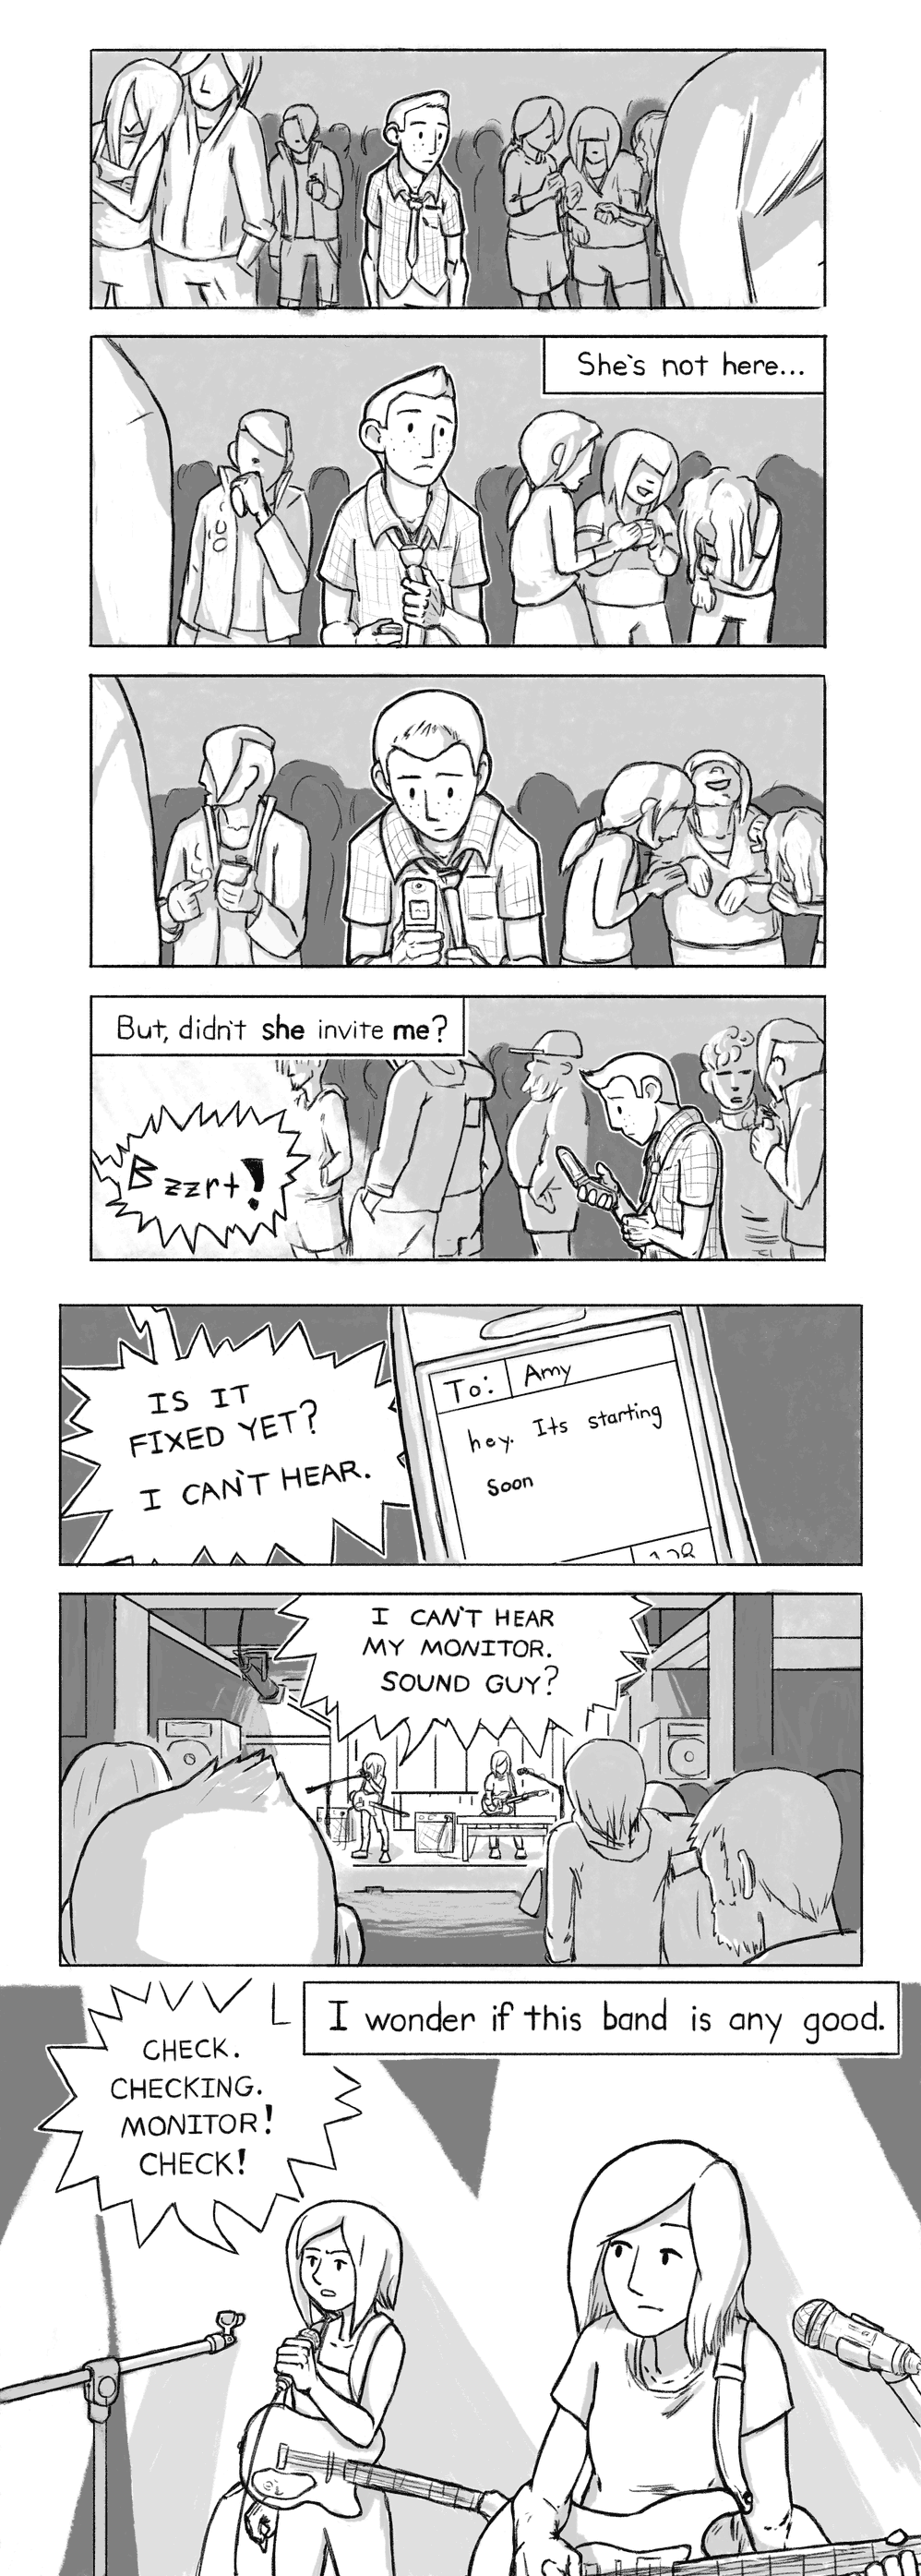 Guestchairs_Page01-1.png